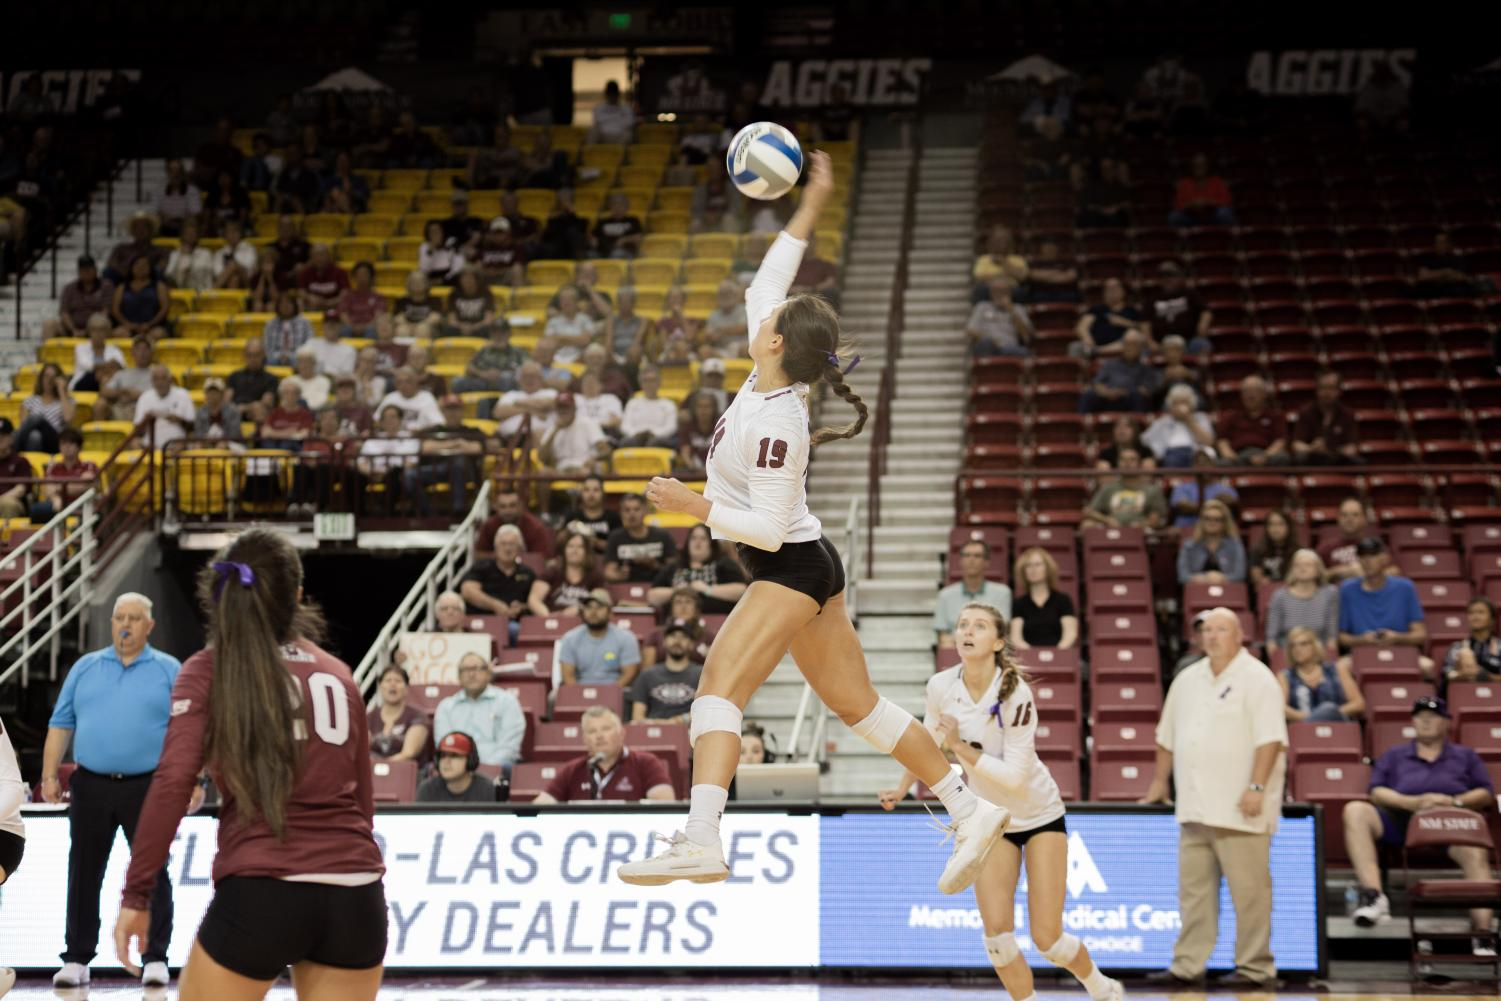 The Aggies drop their first sets of the season, but manage to keep their perfect record alive in a five-set victory over UTEP.